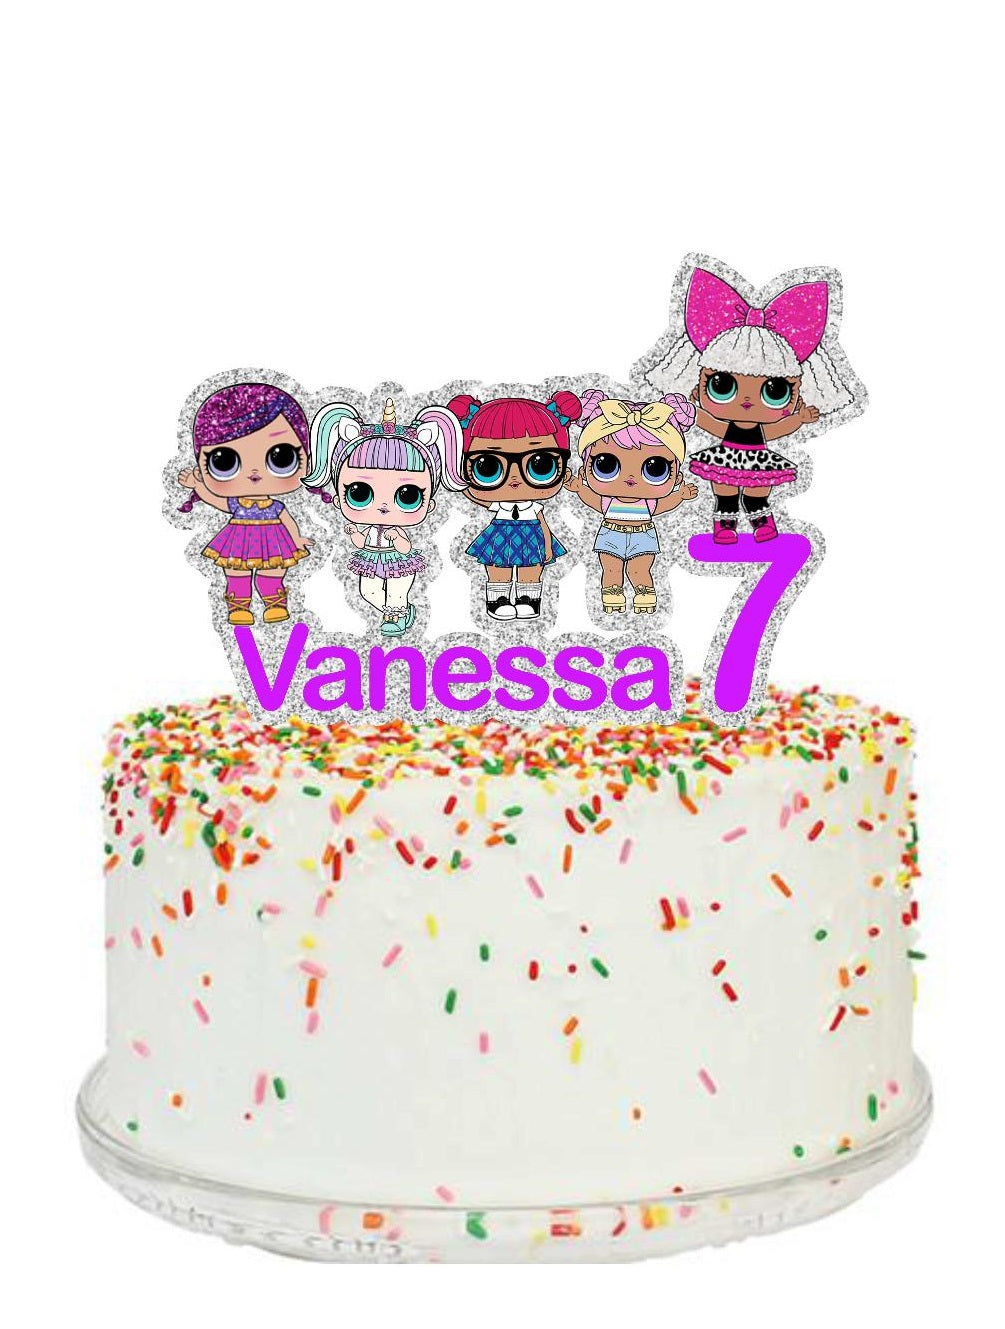 Lol Surprise Dolls Cake Topper Little Luna Station